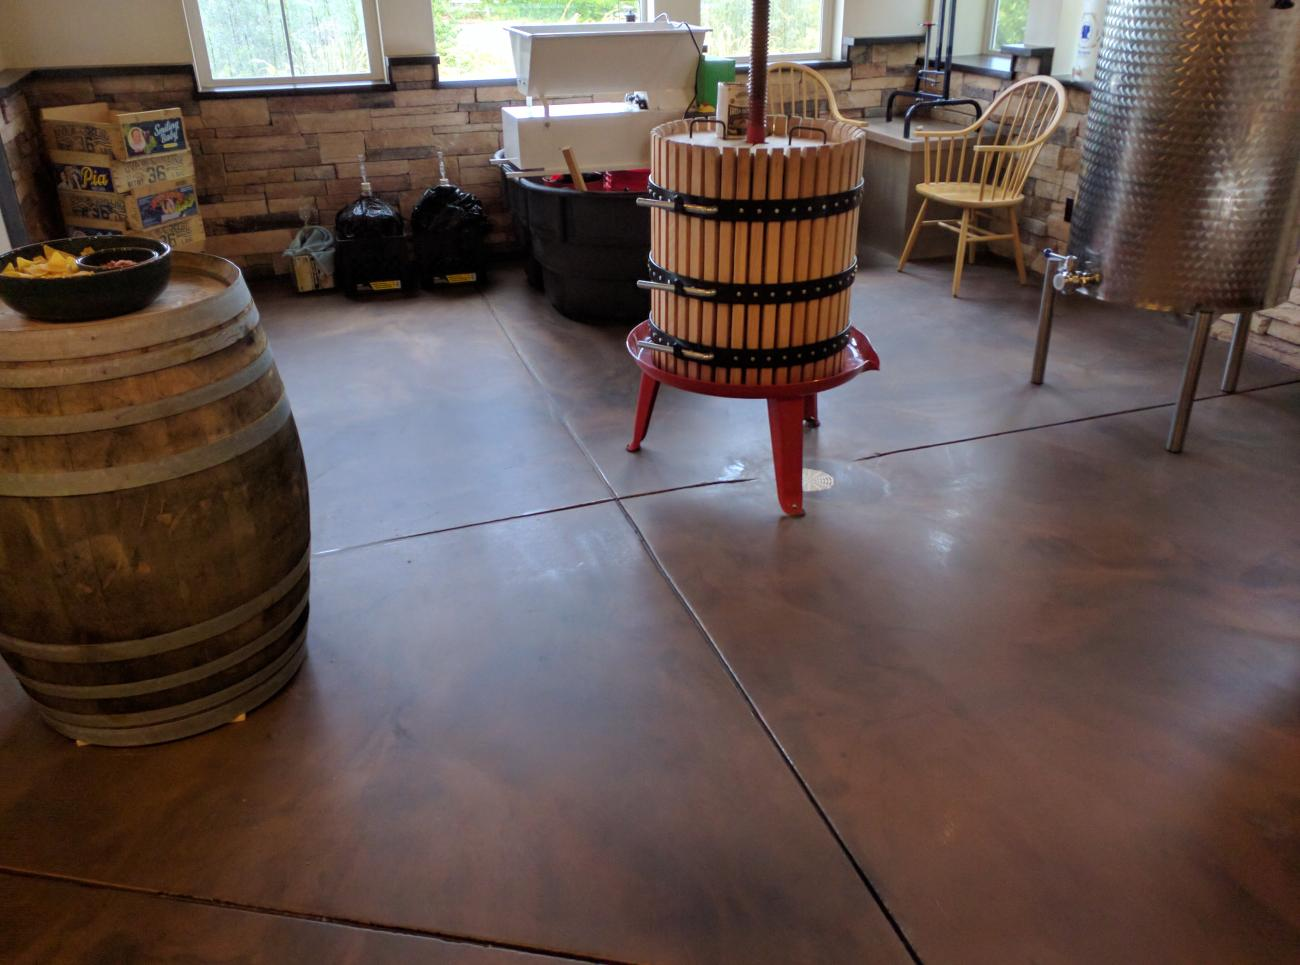 Matte Metallic Epoxy Applied To Concrete Floor in Wine Room Cellar